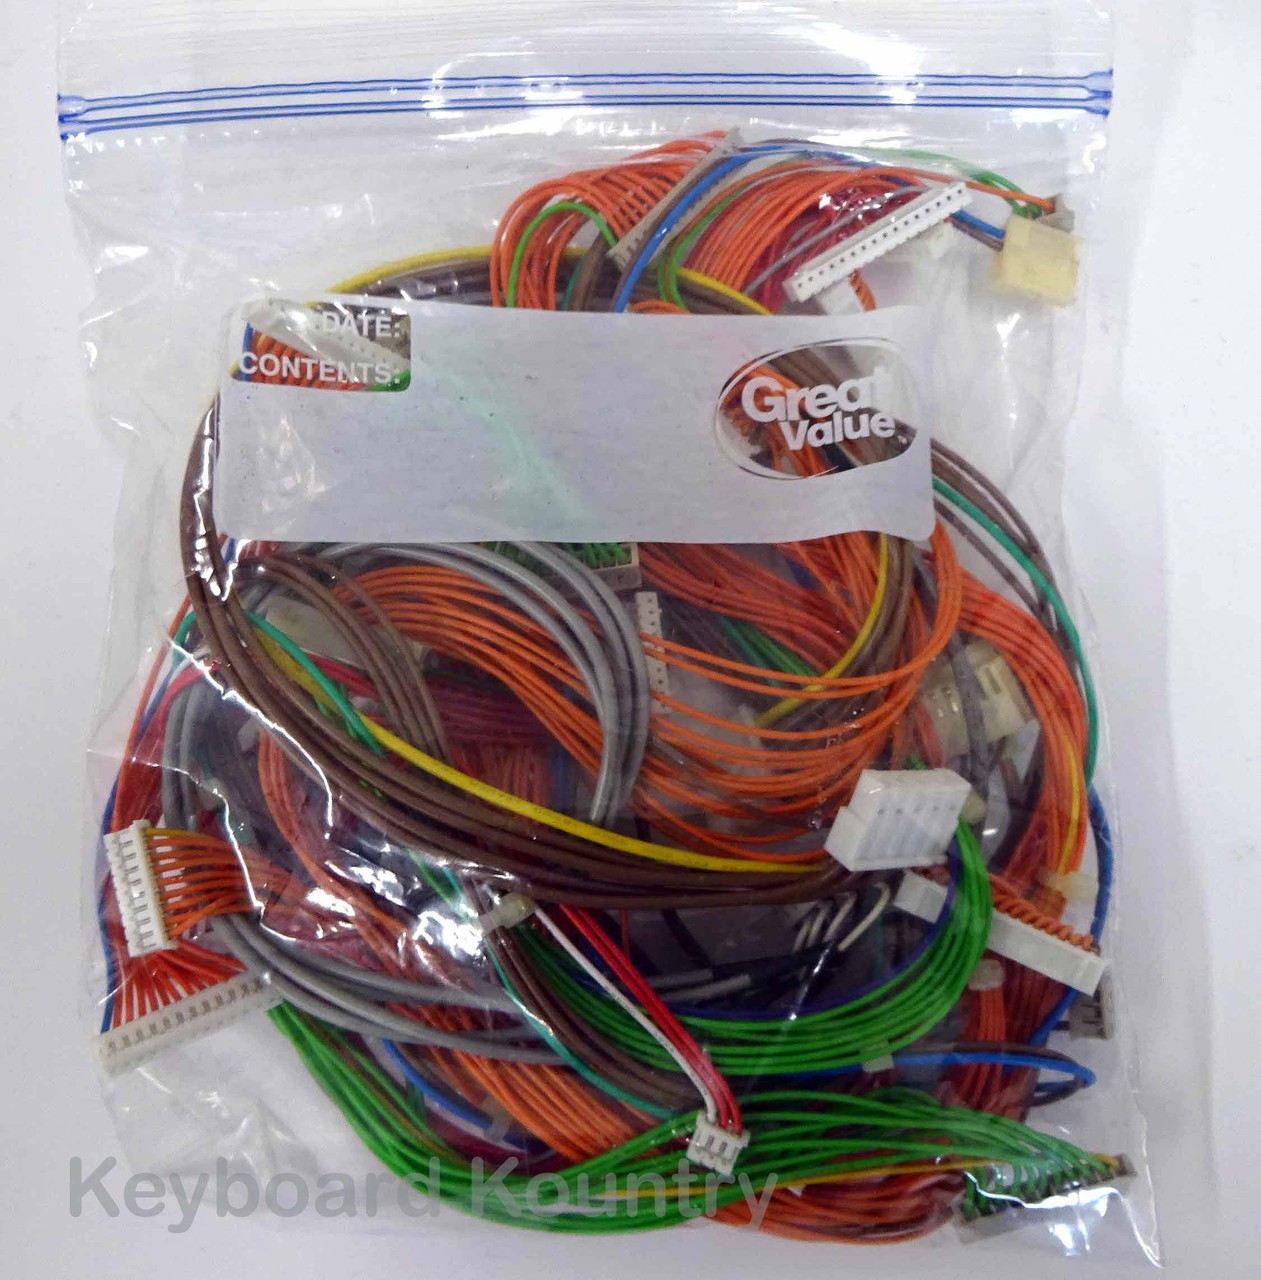 Complete Wiring Harness for Korg Trinity on